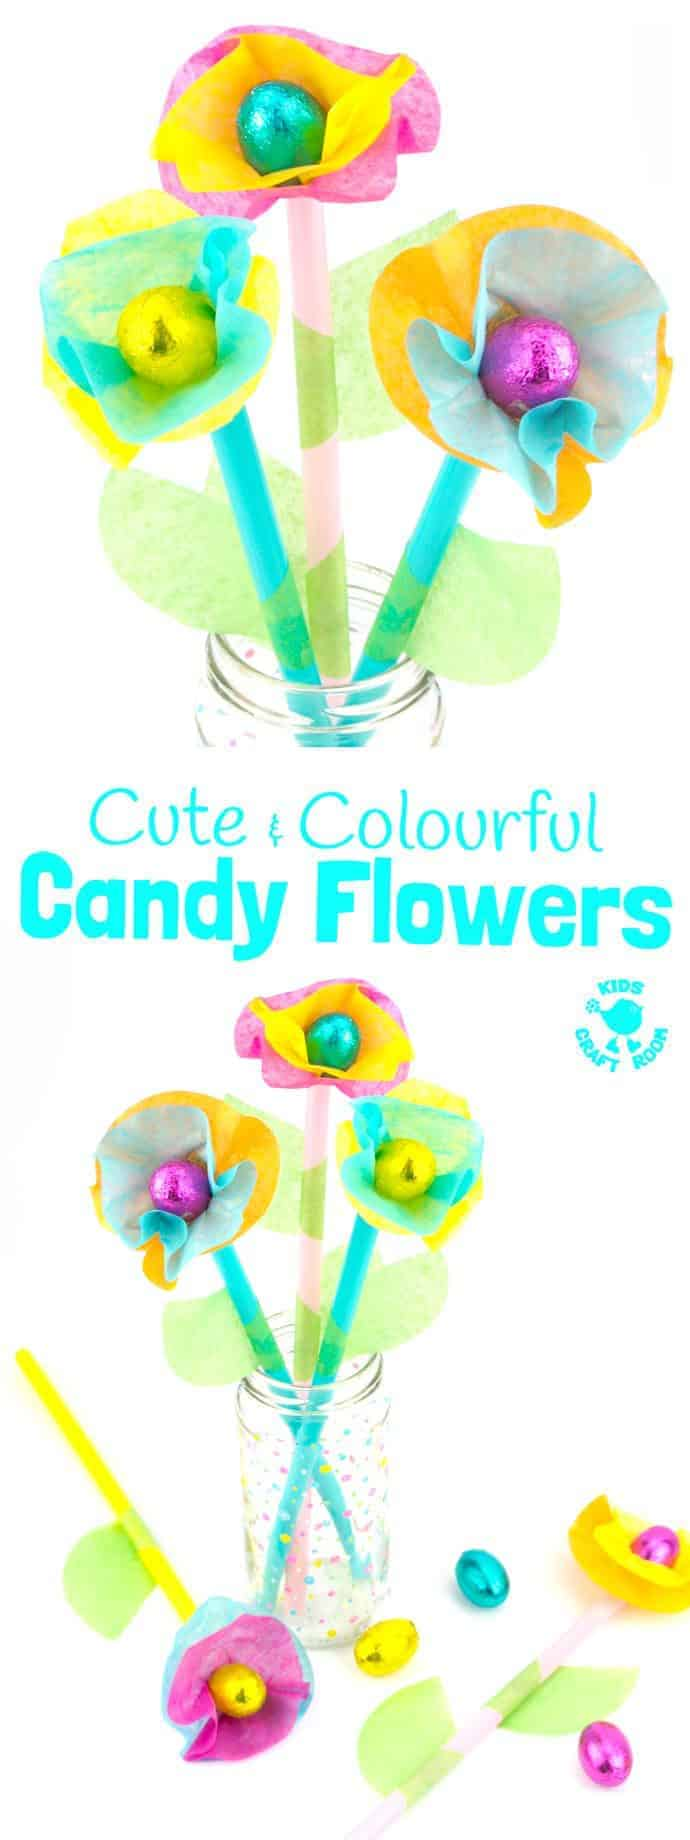 Kids will love this Candy and Tissue Paper Flower Craft. Simple homemade flowers with a centre of delicious candy! Such a fun Easter craft or Spring and Summer craft for kids and they make great homemade gifts or table centre pieces for parties and celebrations. #Easter #eastercrafts #flowercrafts #kidscrafts #craftsforkids #kidscraftroom #flowers #easterflowers #homemadeflowers #diyflowers #paperflowers #springcrafts